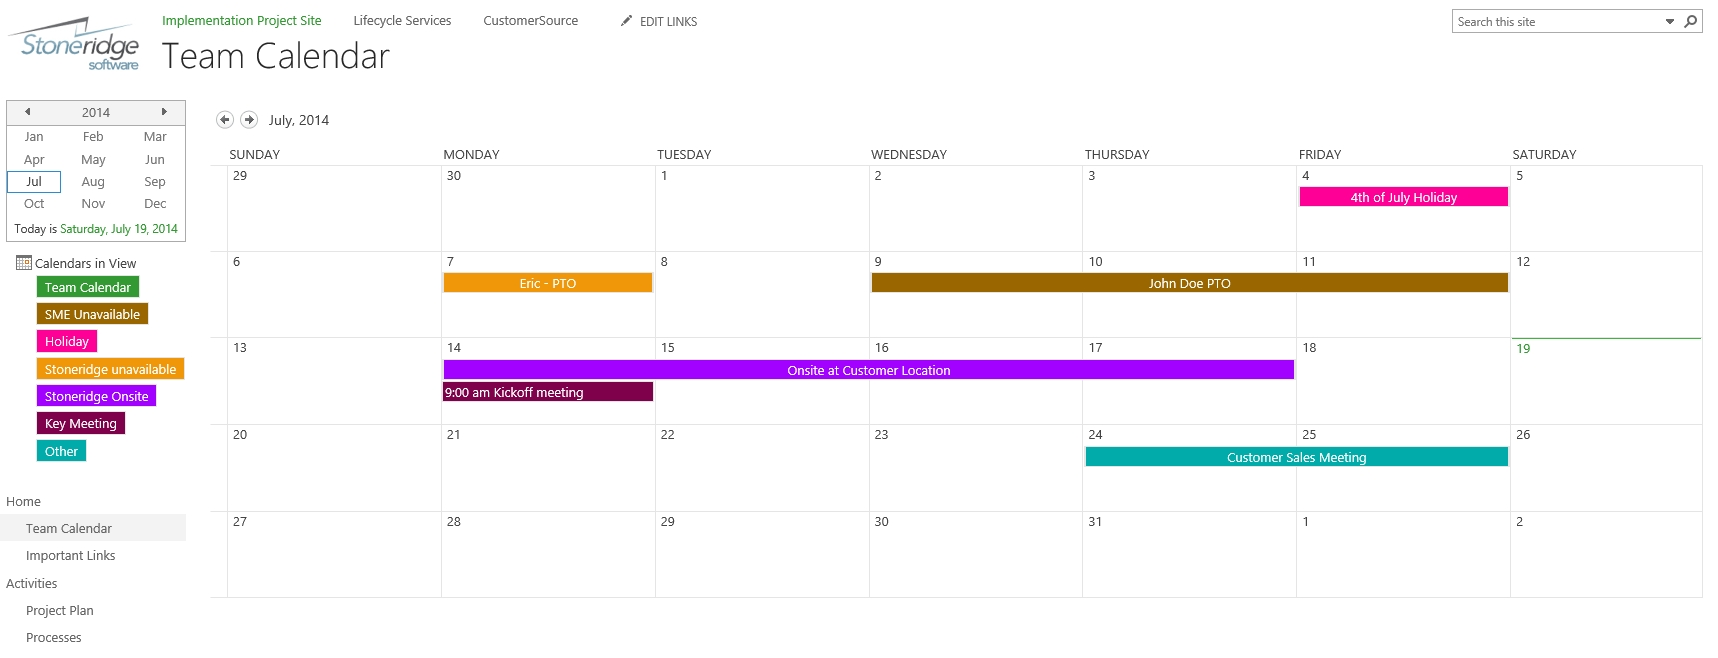 Creating A Color Coded Calendar In Sharepoint Online | Stoneridge in Sharepoint 2013 Calendar Overlay Issues